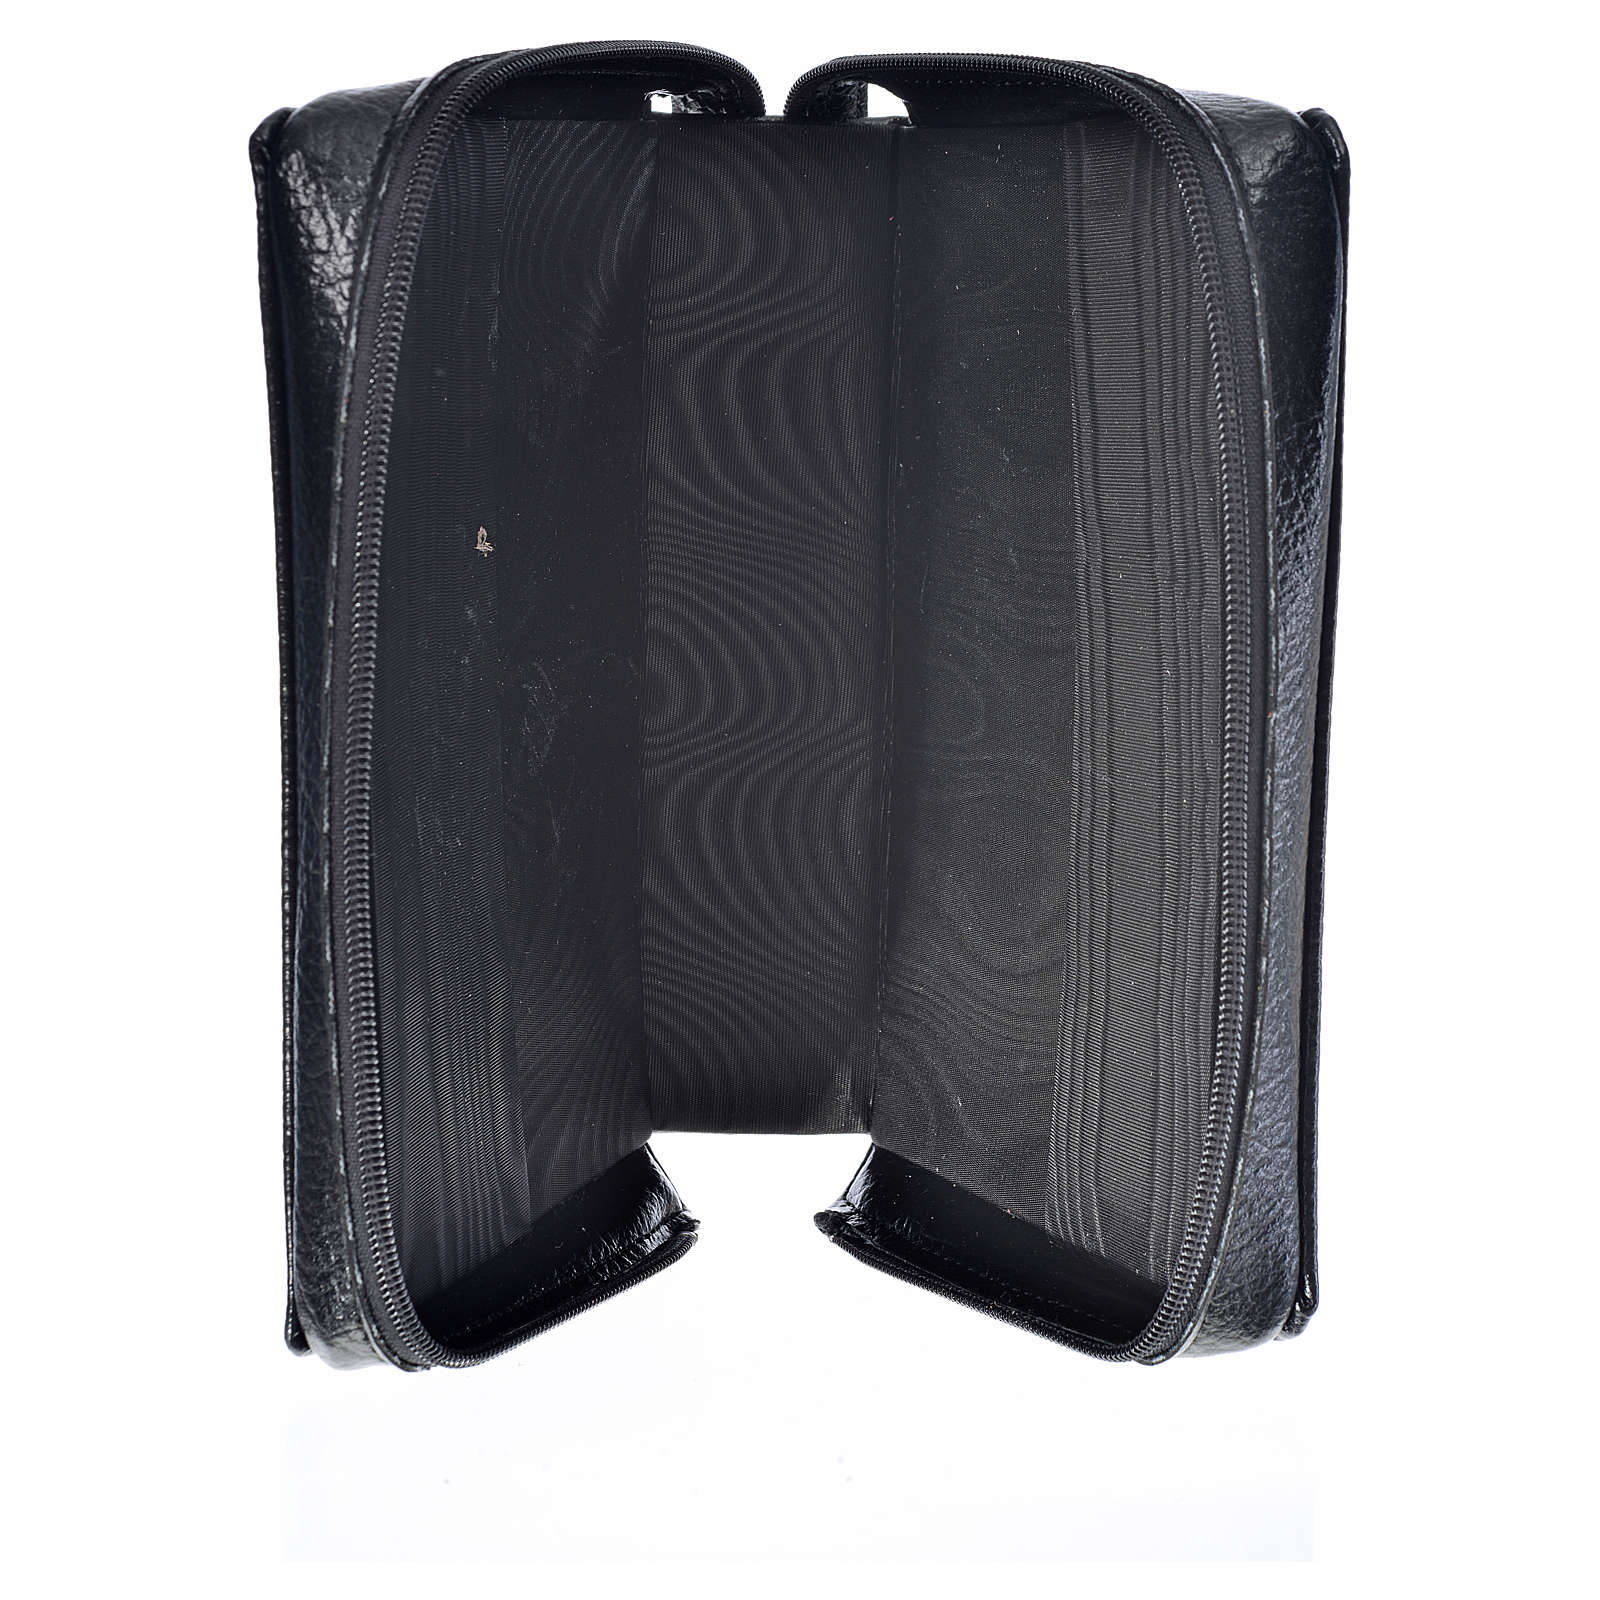 Black bonded leather cover for Morning and Evening prayer with image of Our Lady of Kiko 4